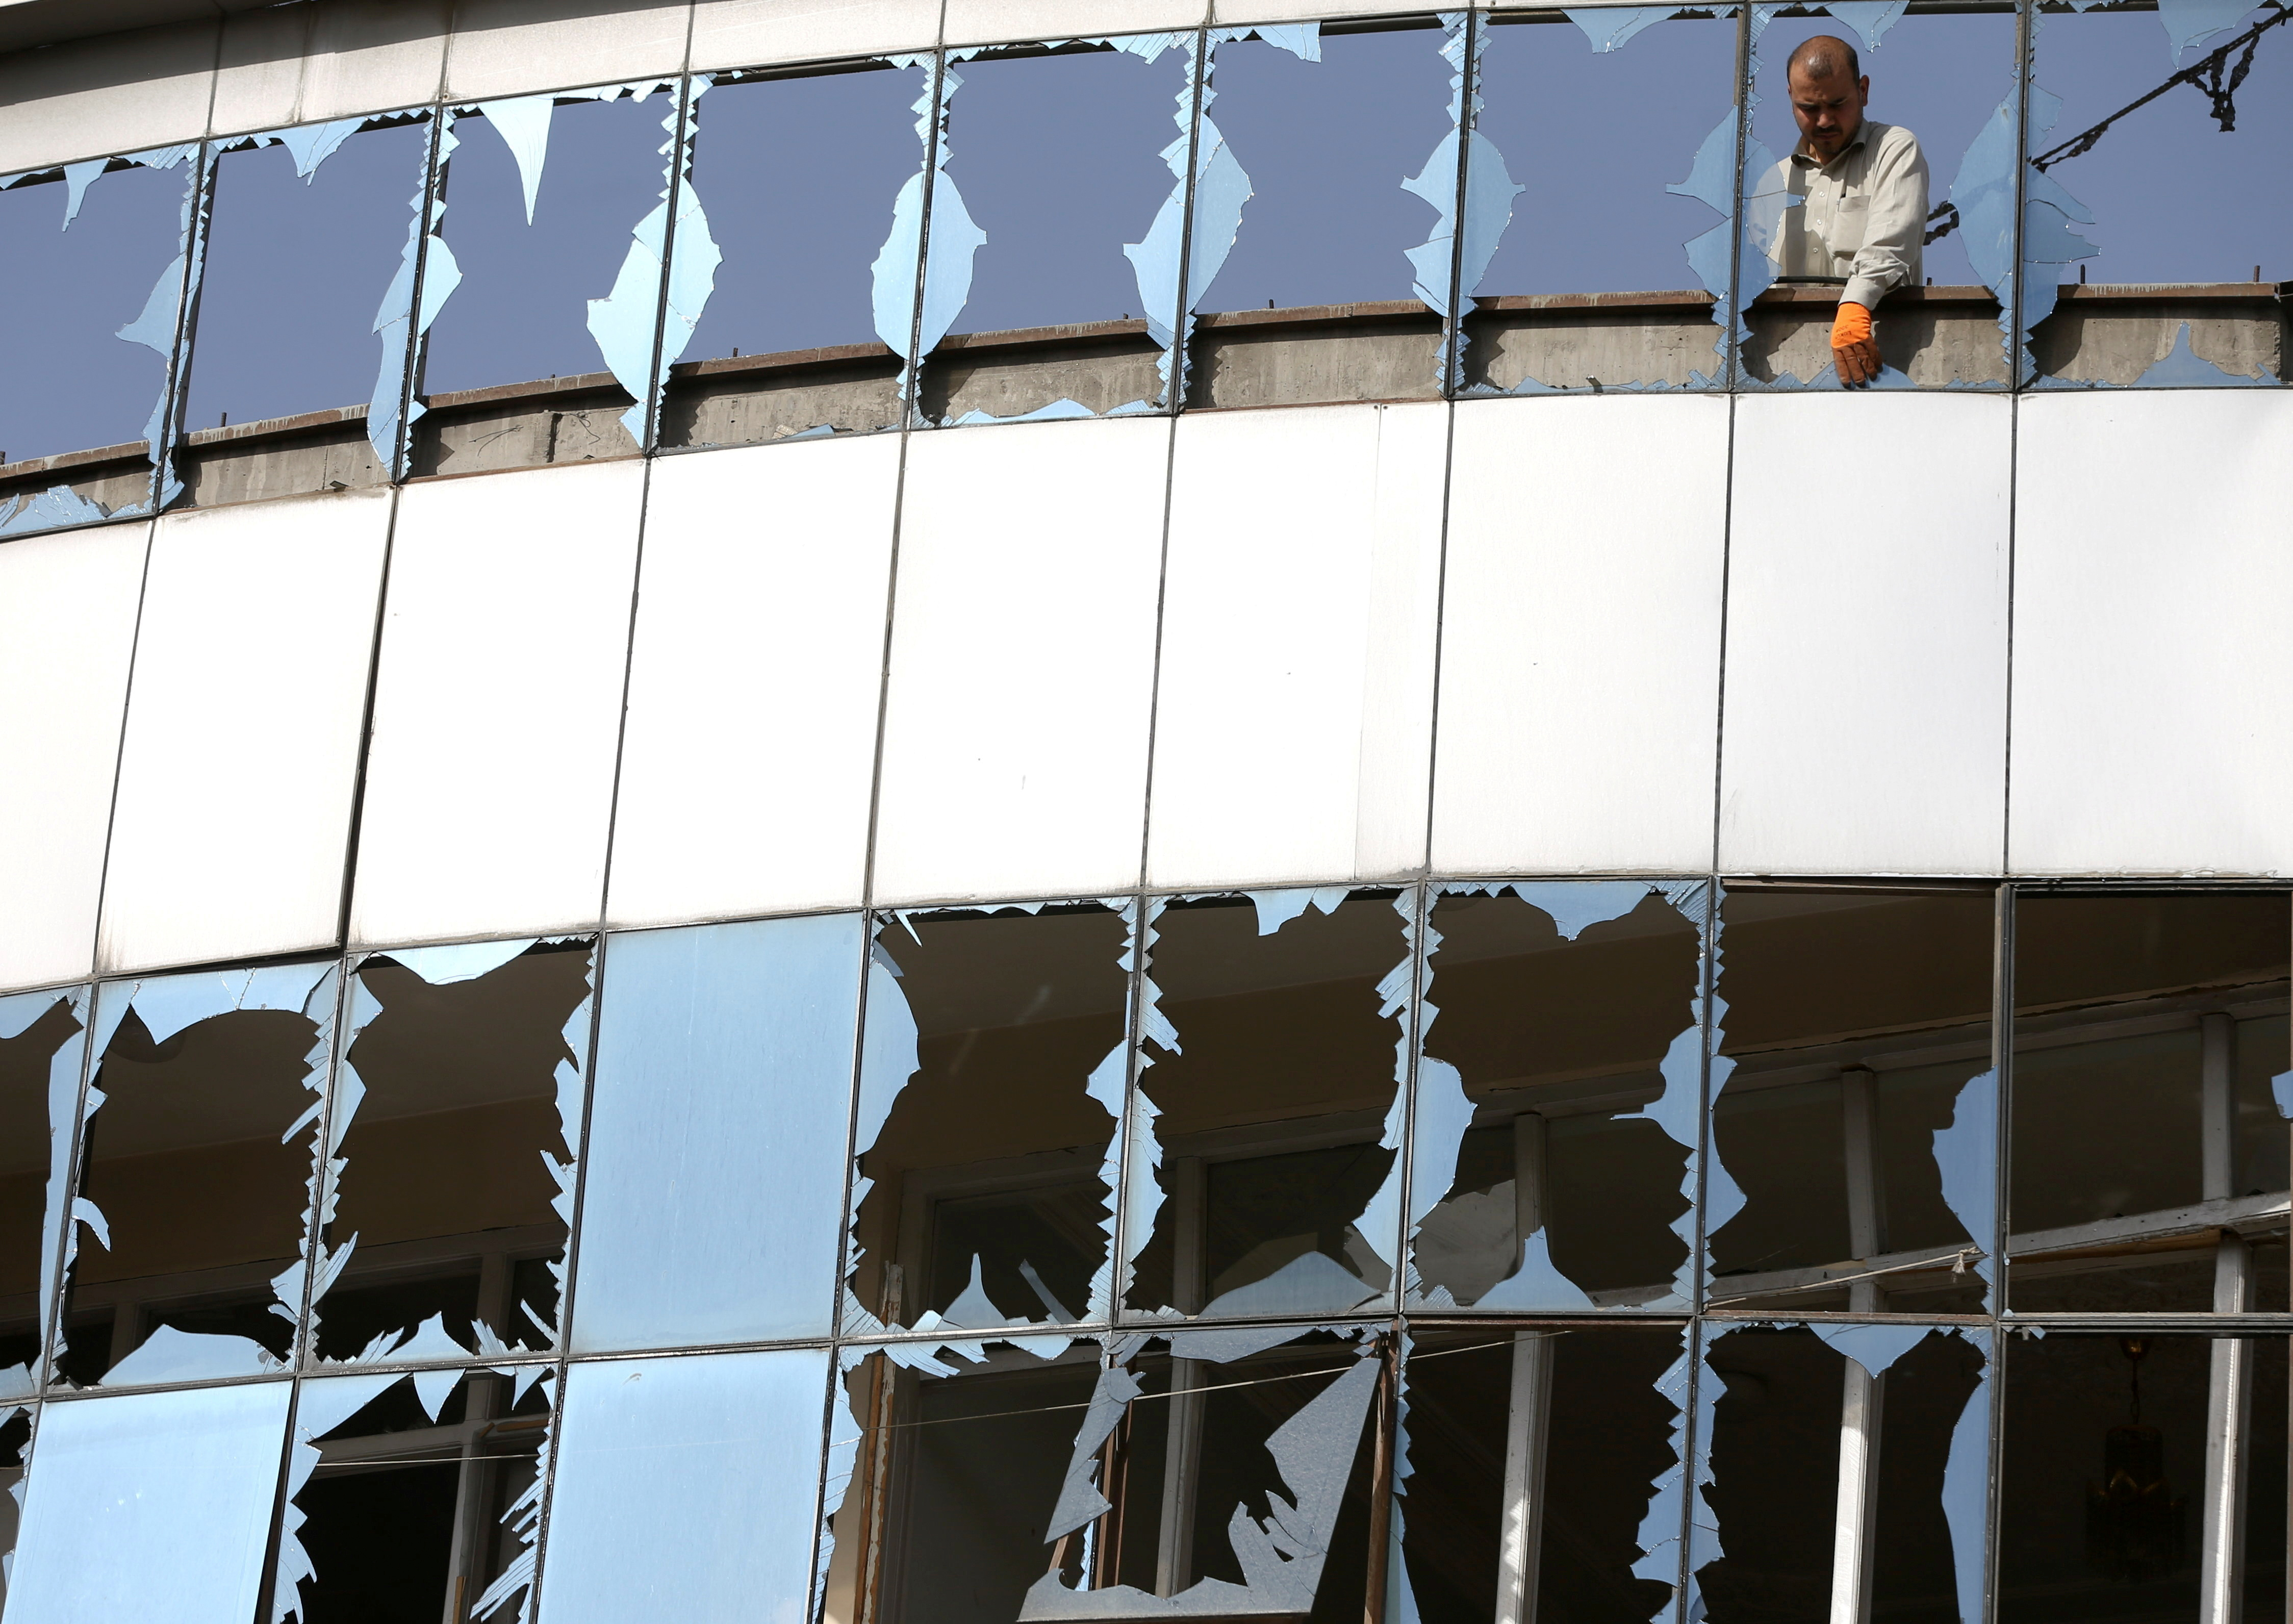 A man removes broken glasses from a window at the site of yesterday's night-time car bomb blast in Kabul, Afghanistan August 4, 2021. REUTERS/Stringer